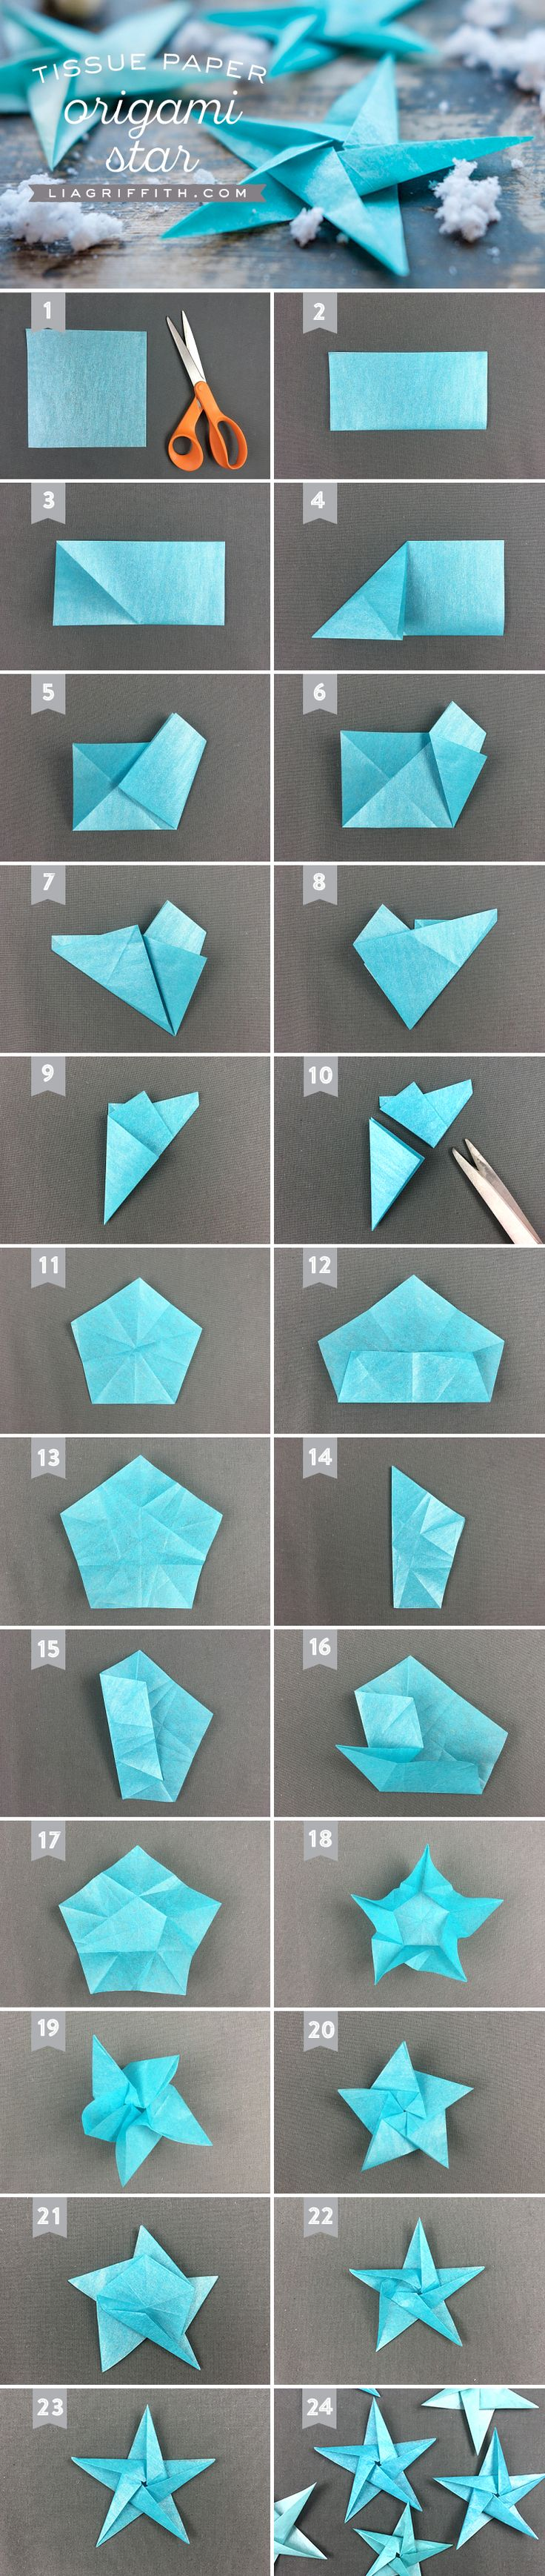 Tissue Star Origami Christmas Ornaments | Lia Griffith More